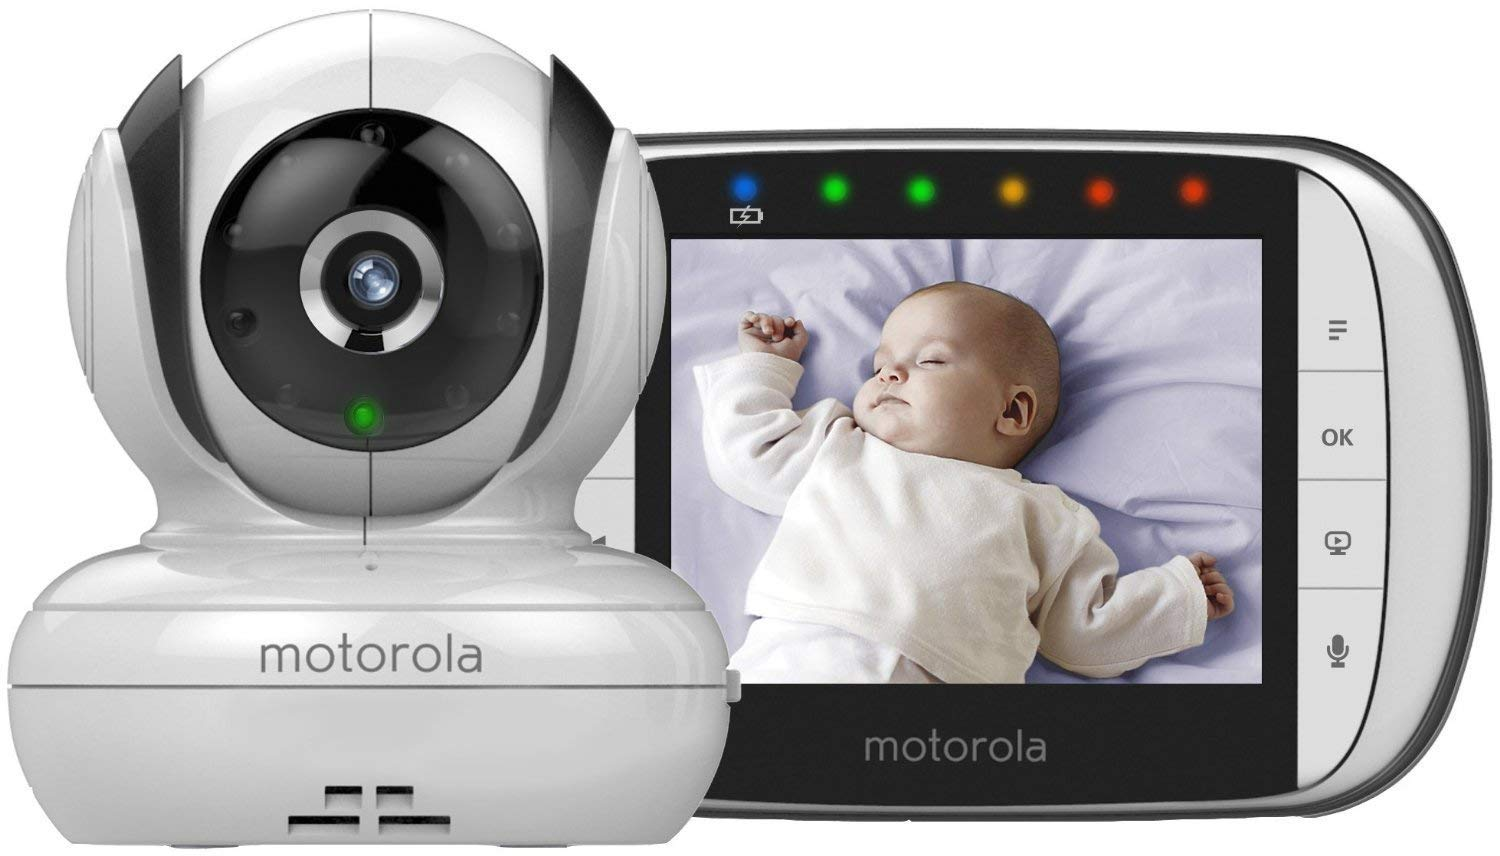 Motorola MBP36S Video Baby Monitor (NEW 2018 version) Motorola Features 3.5 inches colour tft led display with 320 x 240 resolution Motorised pan, tilt and digital zoom comes with up to 270 degrees viewing angle when rotating the camera unit left to right (and vice versa) Improved infrared night vision and battery life optimisation 1